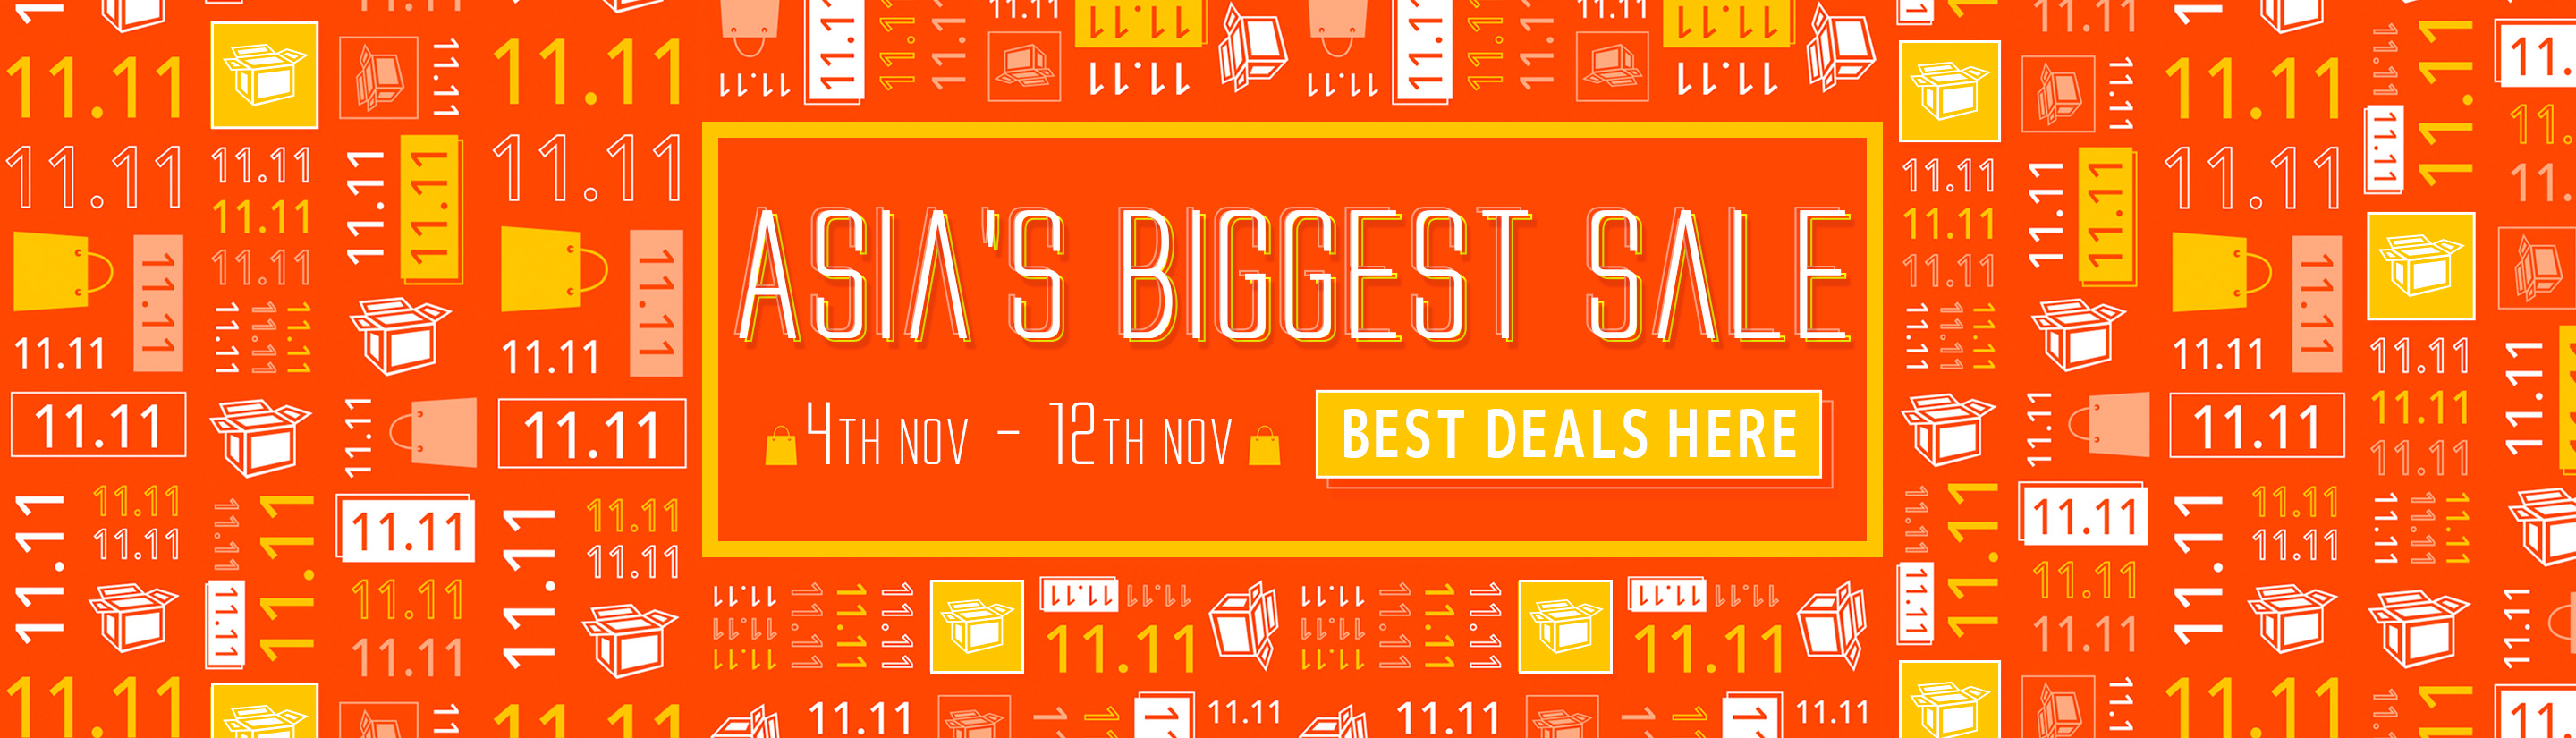 11.11 Sale 2019 - Asia's Biggest Sale